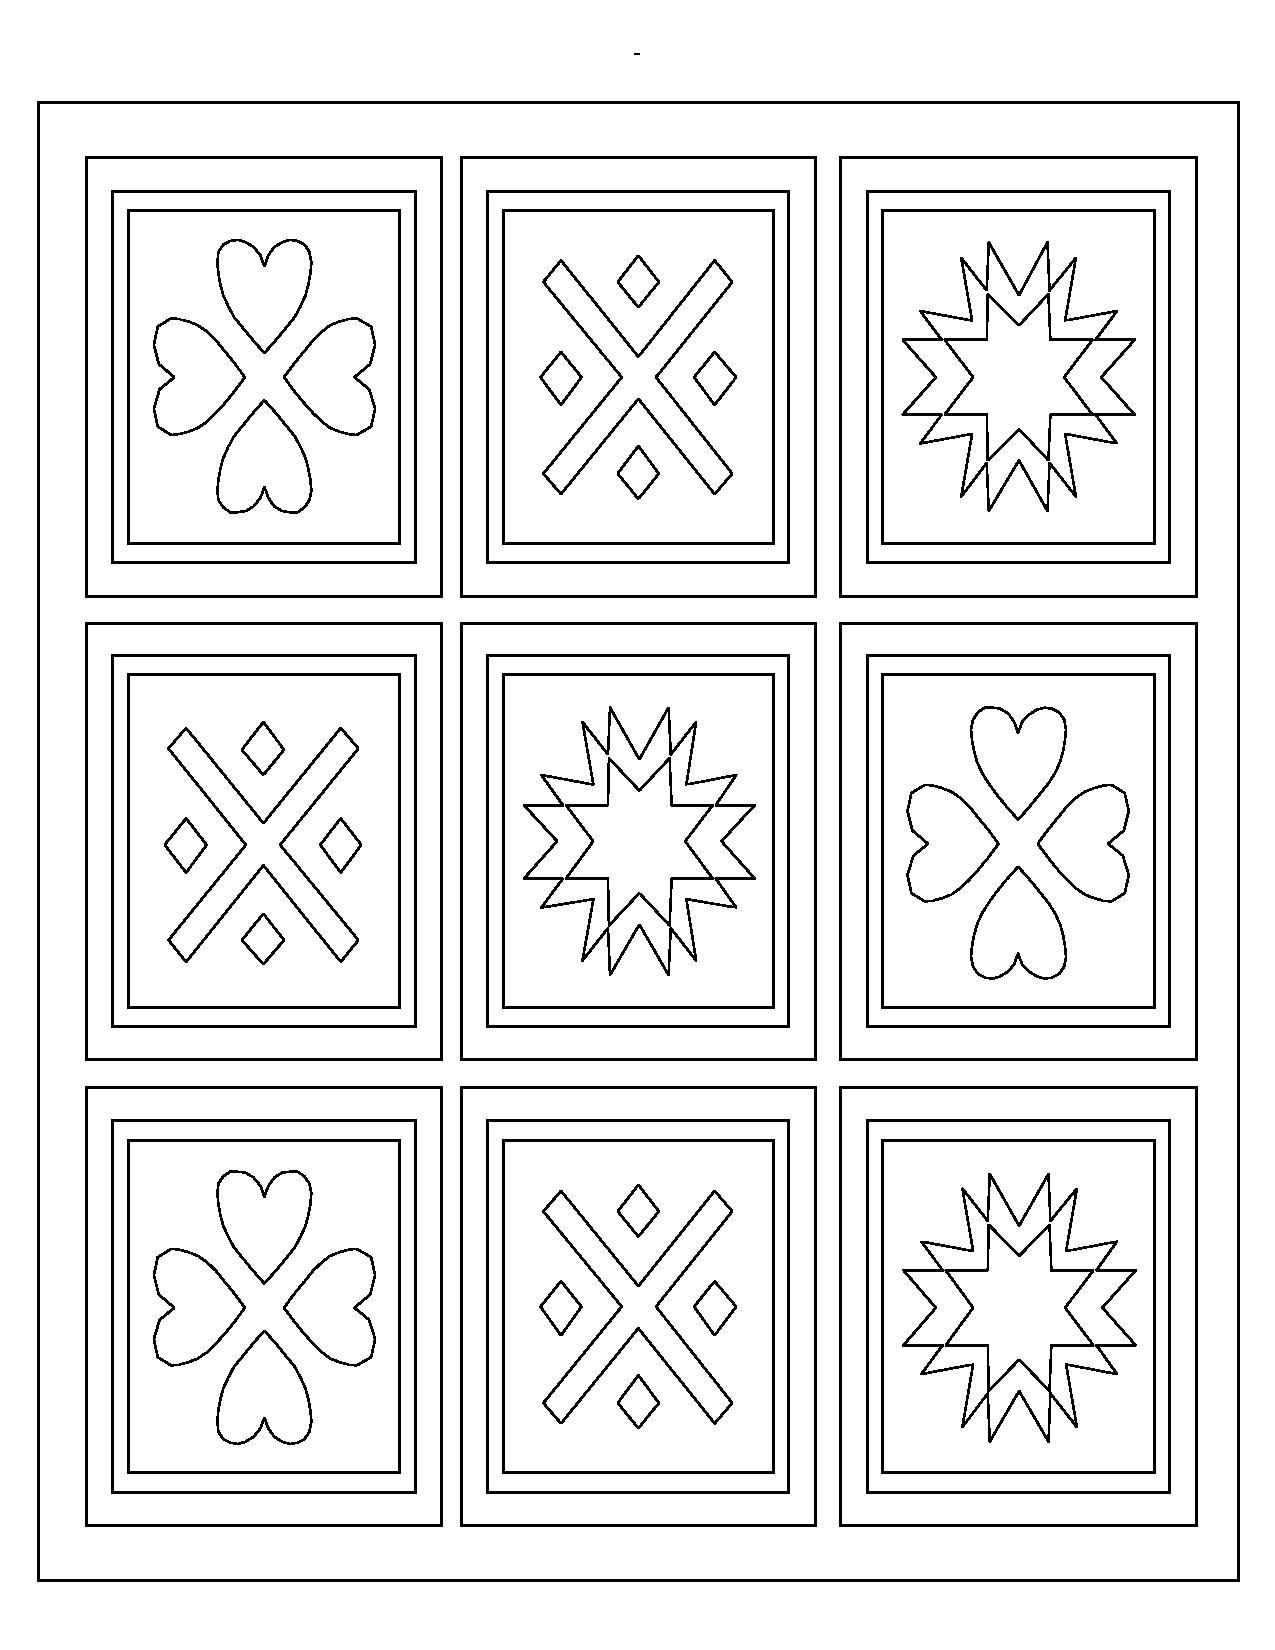 Quilt Coloring Pages Preschool Google Search Pattern Coloring Pages Coloring Pages Free Coloring Pages